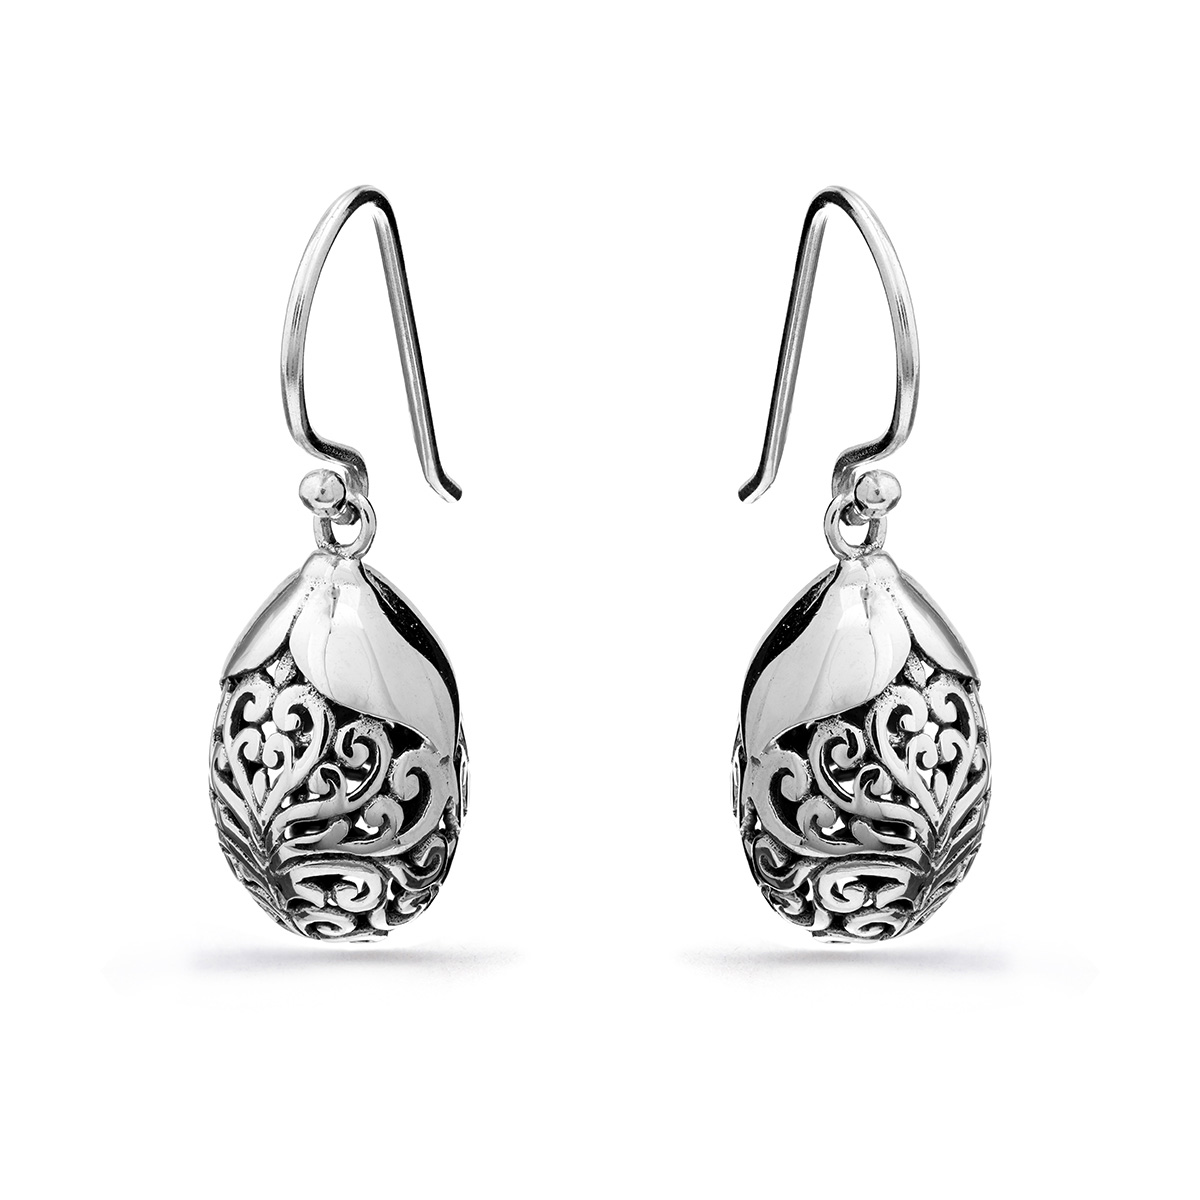 Kelinci Silver Earrings